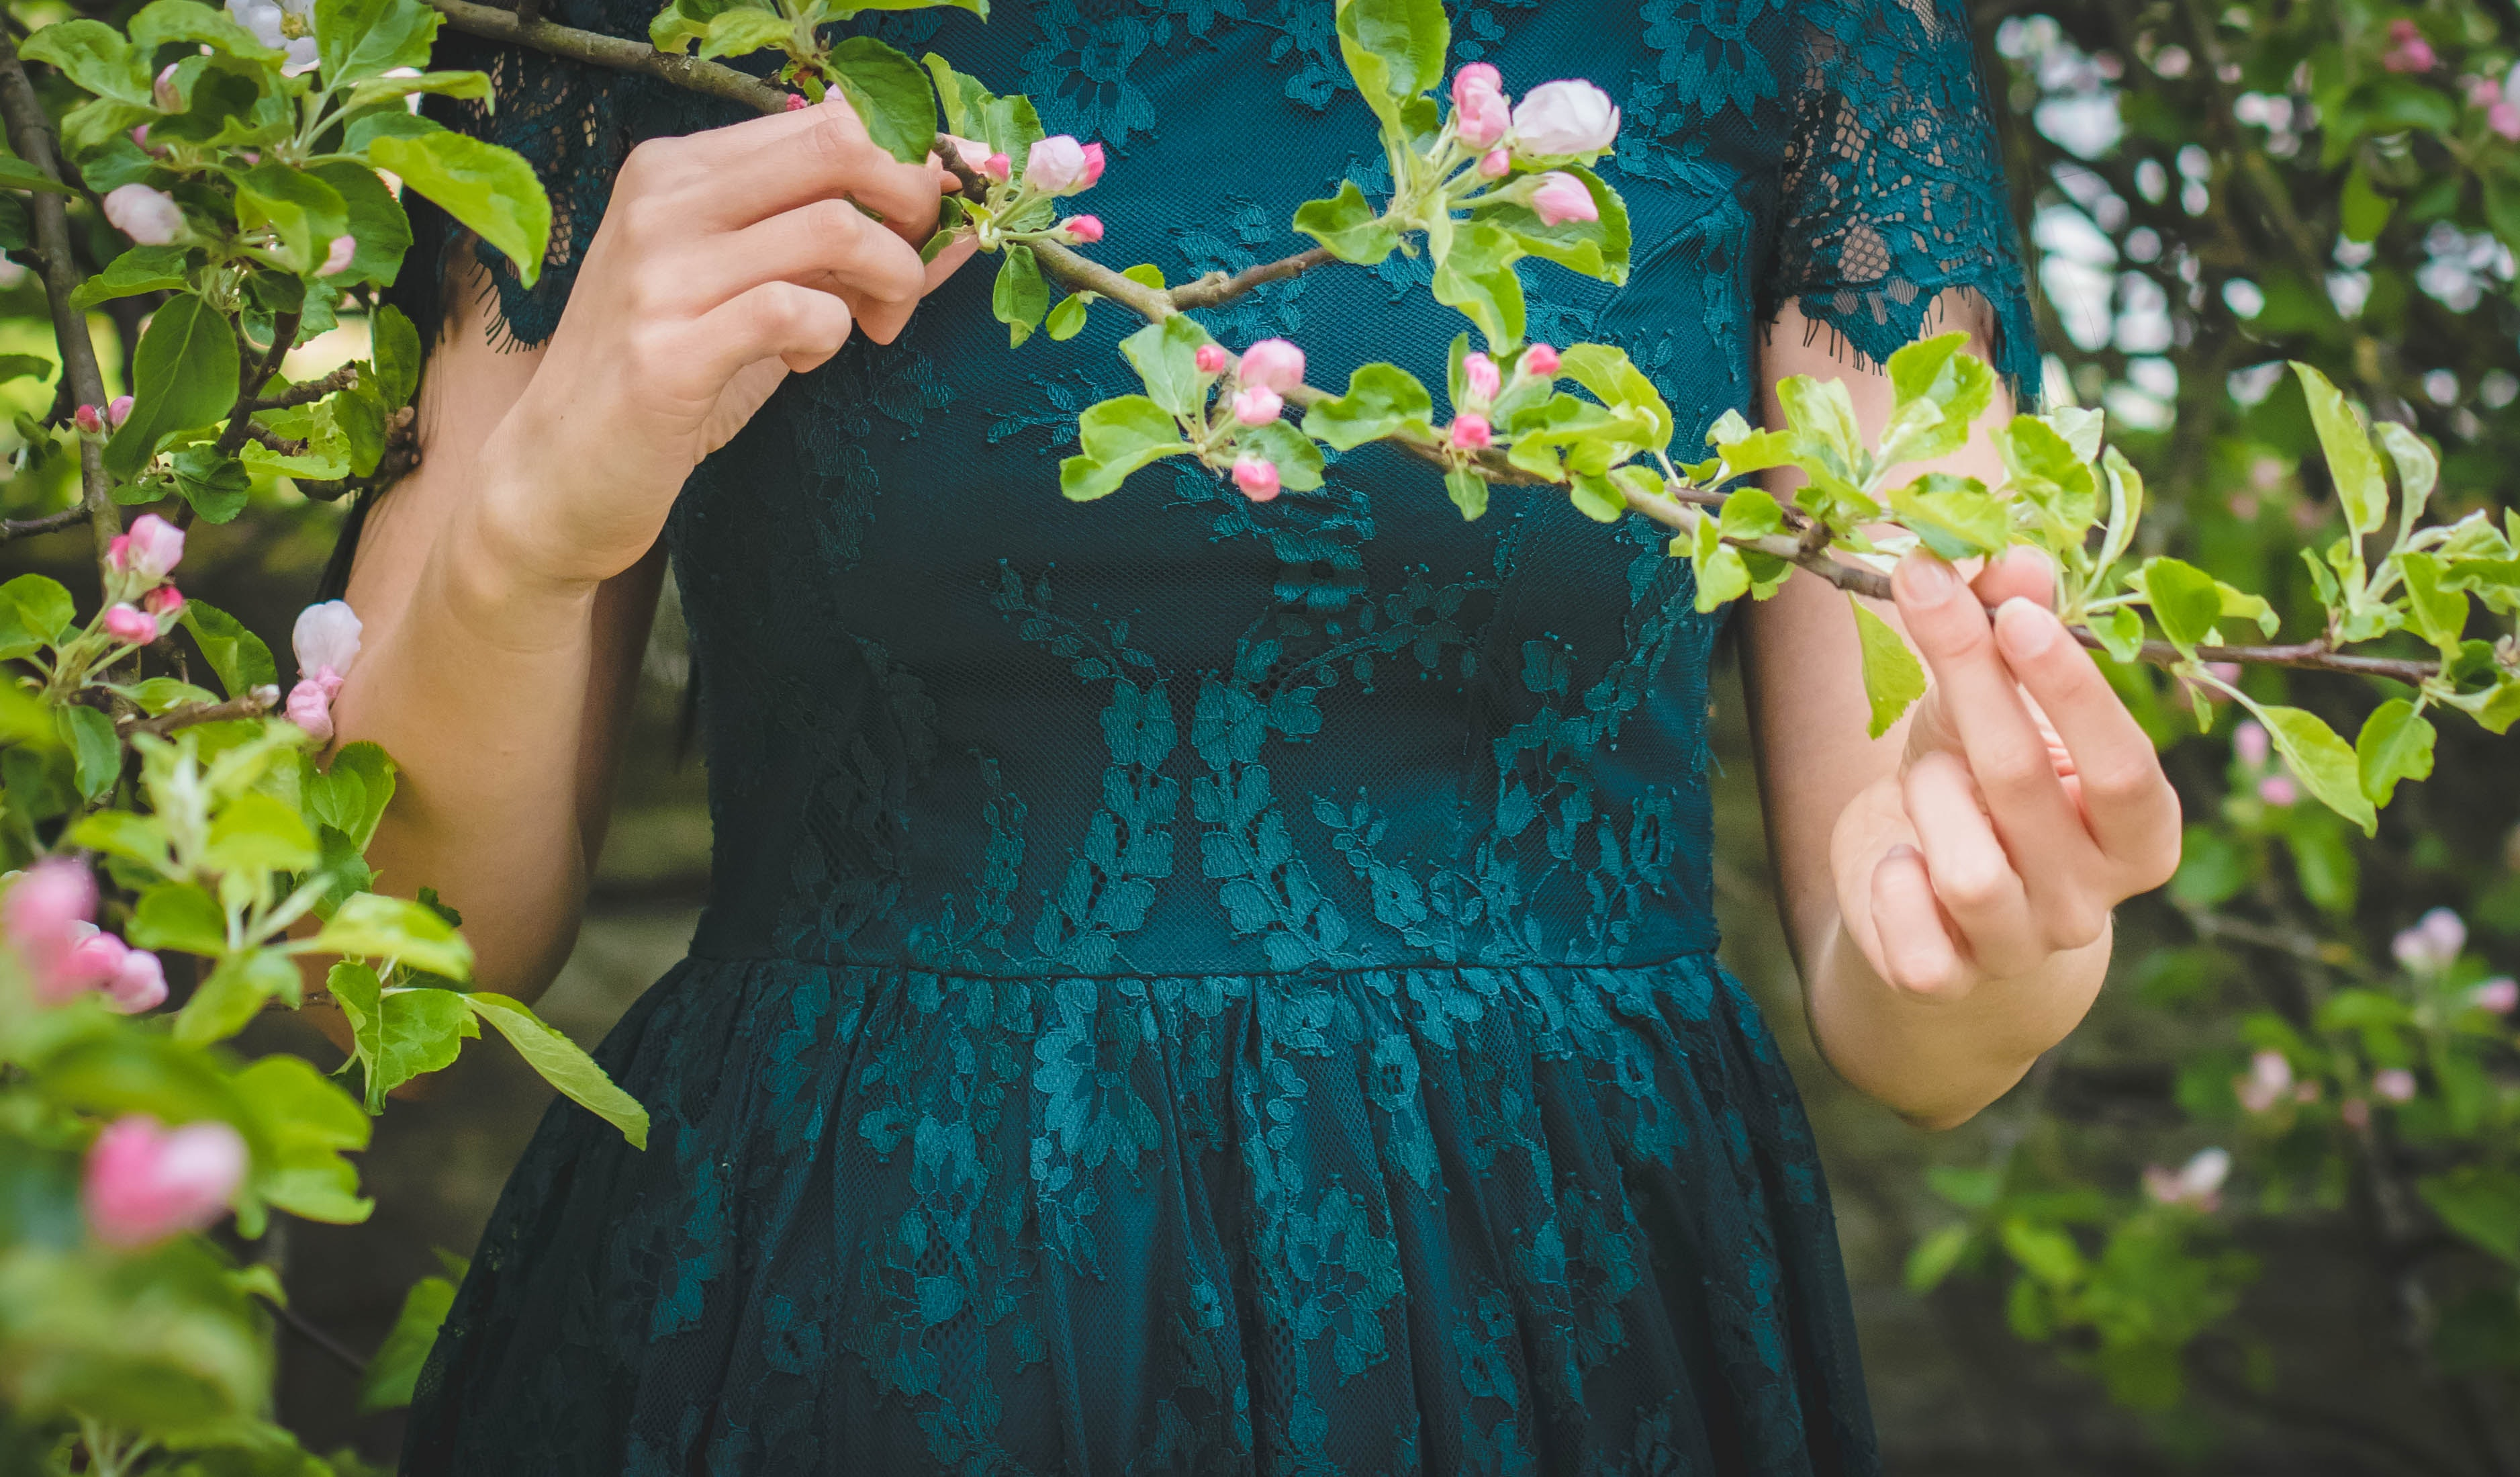 Woman Holding Green Leafed Plant, Bloom, Blossom, Dress, Environment, HQ Photo